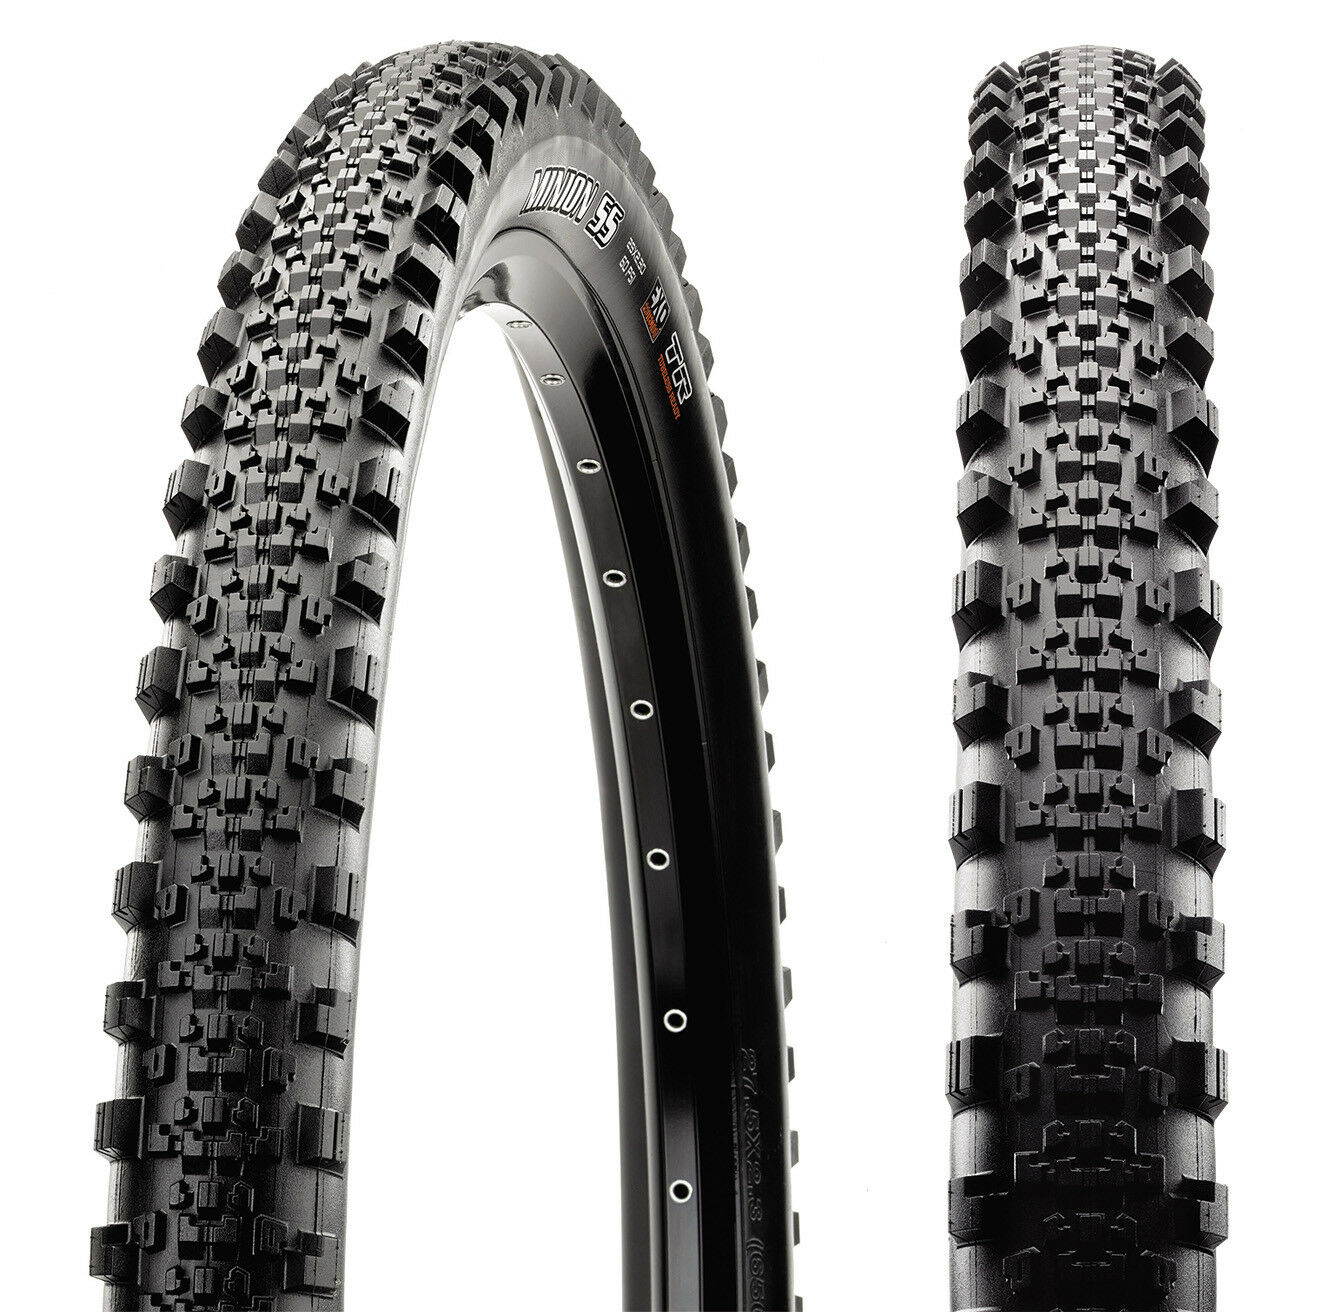 MAXXIS Minion SS 27.5x2.30 60TPI Foldable  Exo   TR Silkworm Dual 765g  with 100% quality and %100 service